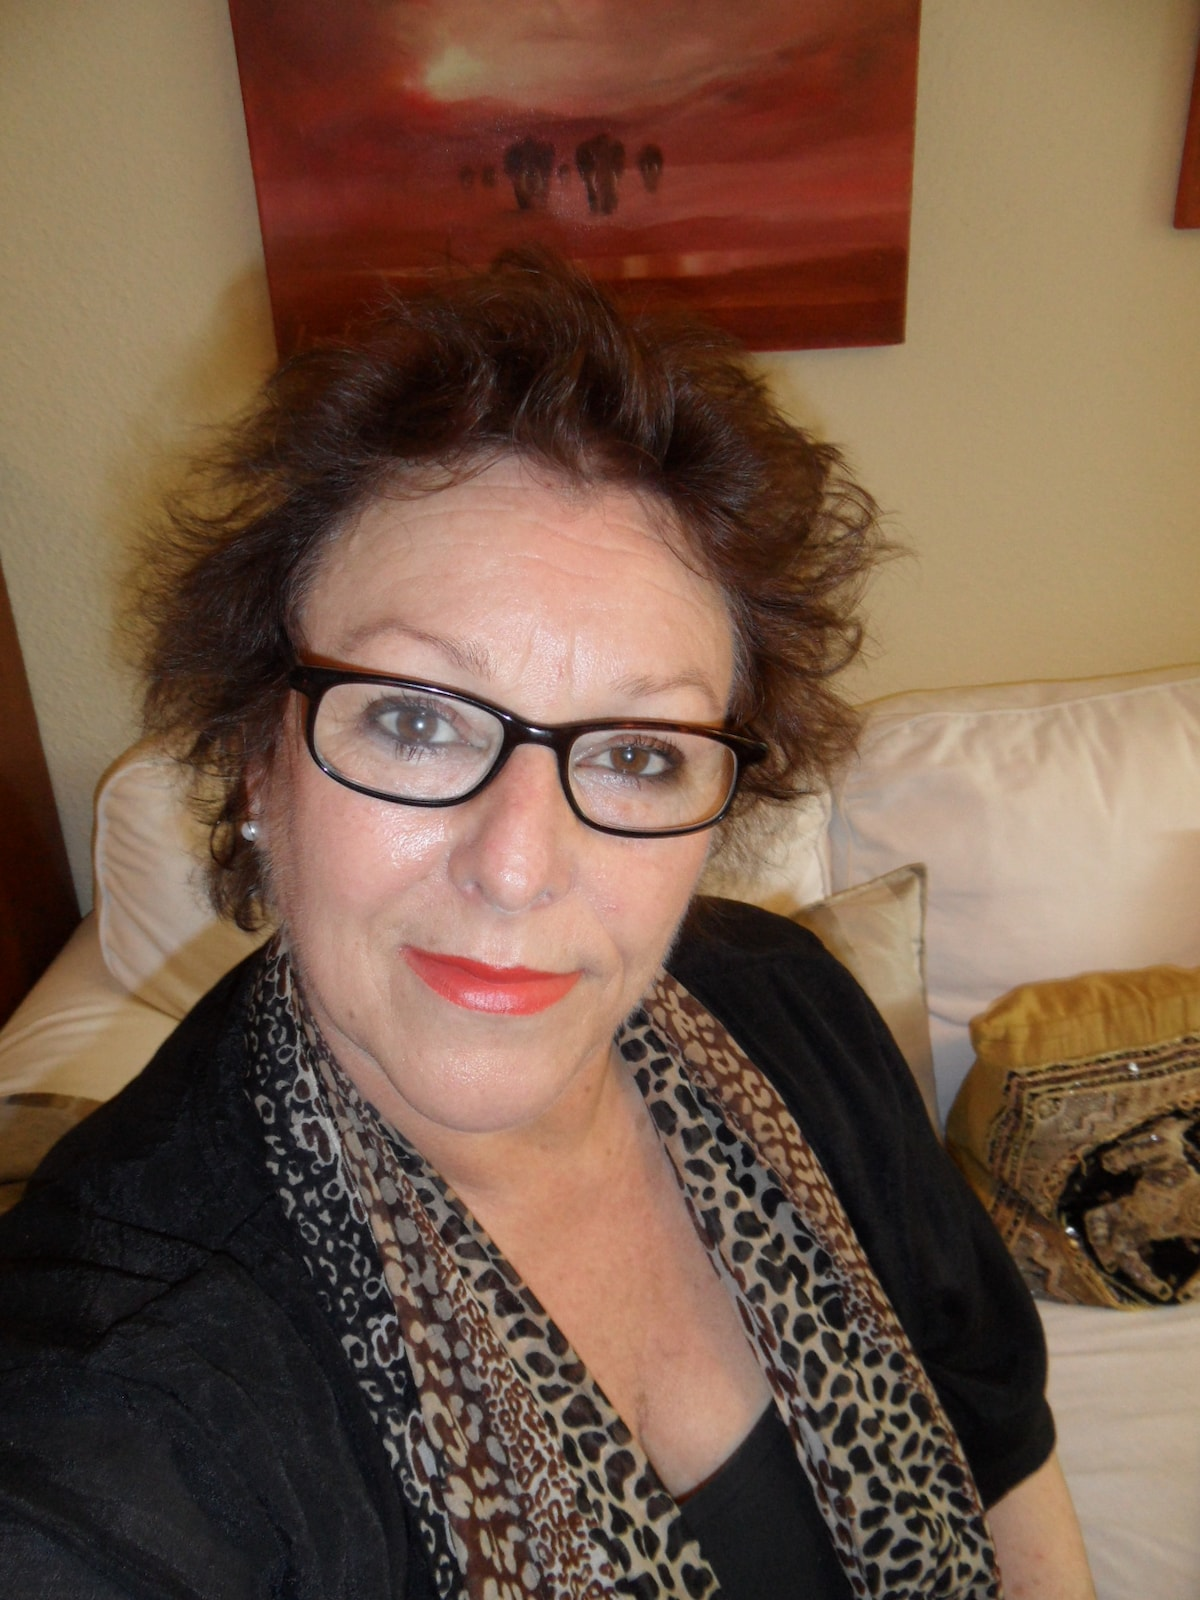 Gina From Norderstedt, Germany